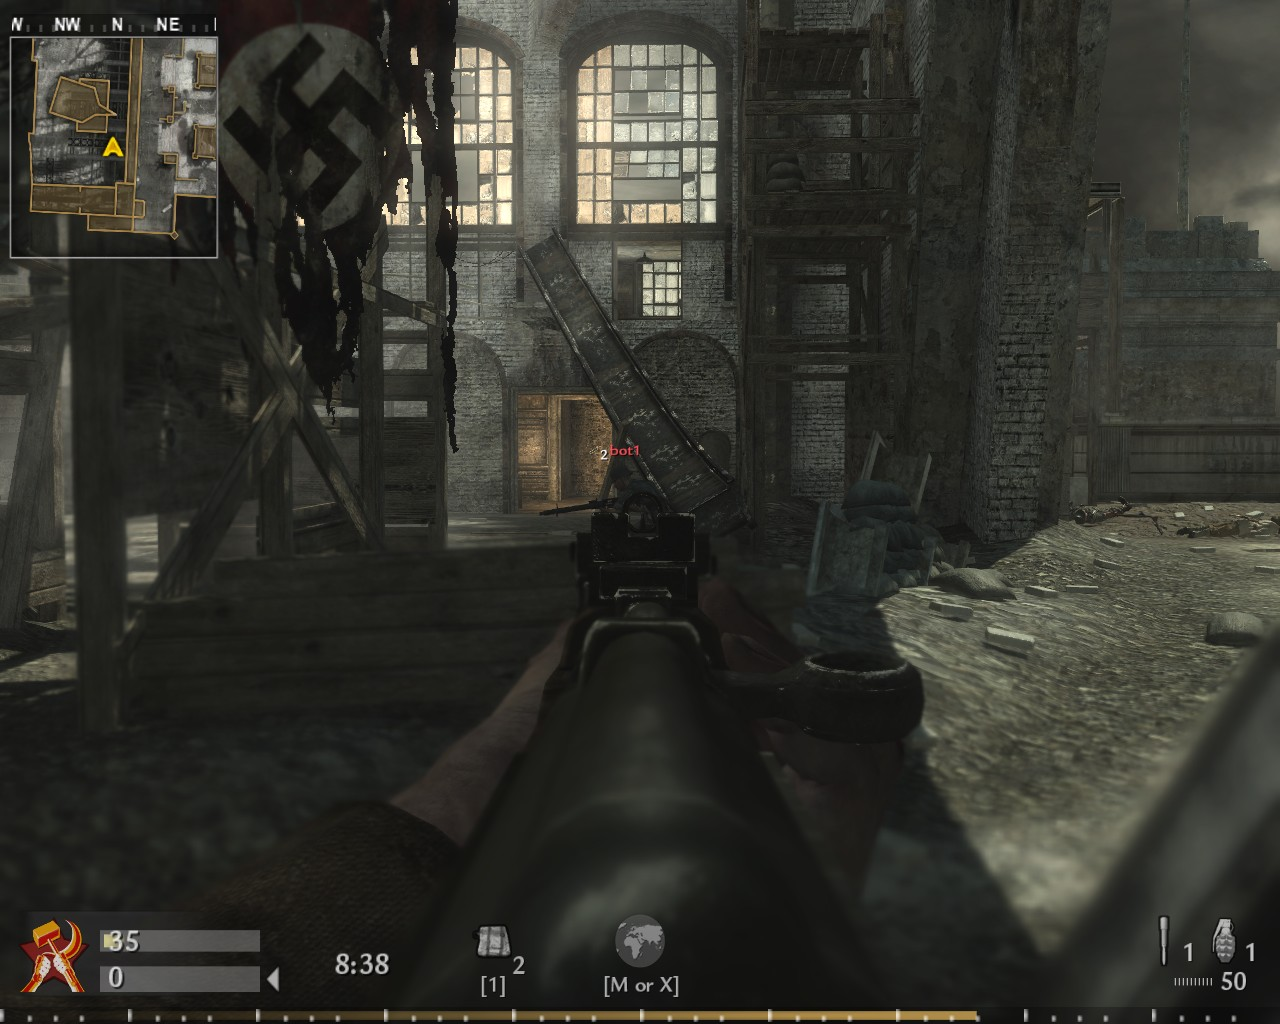 PeZBOT - Multiplayer Bots mod for Call of Duty 4: Modern